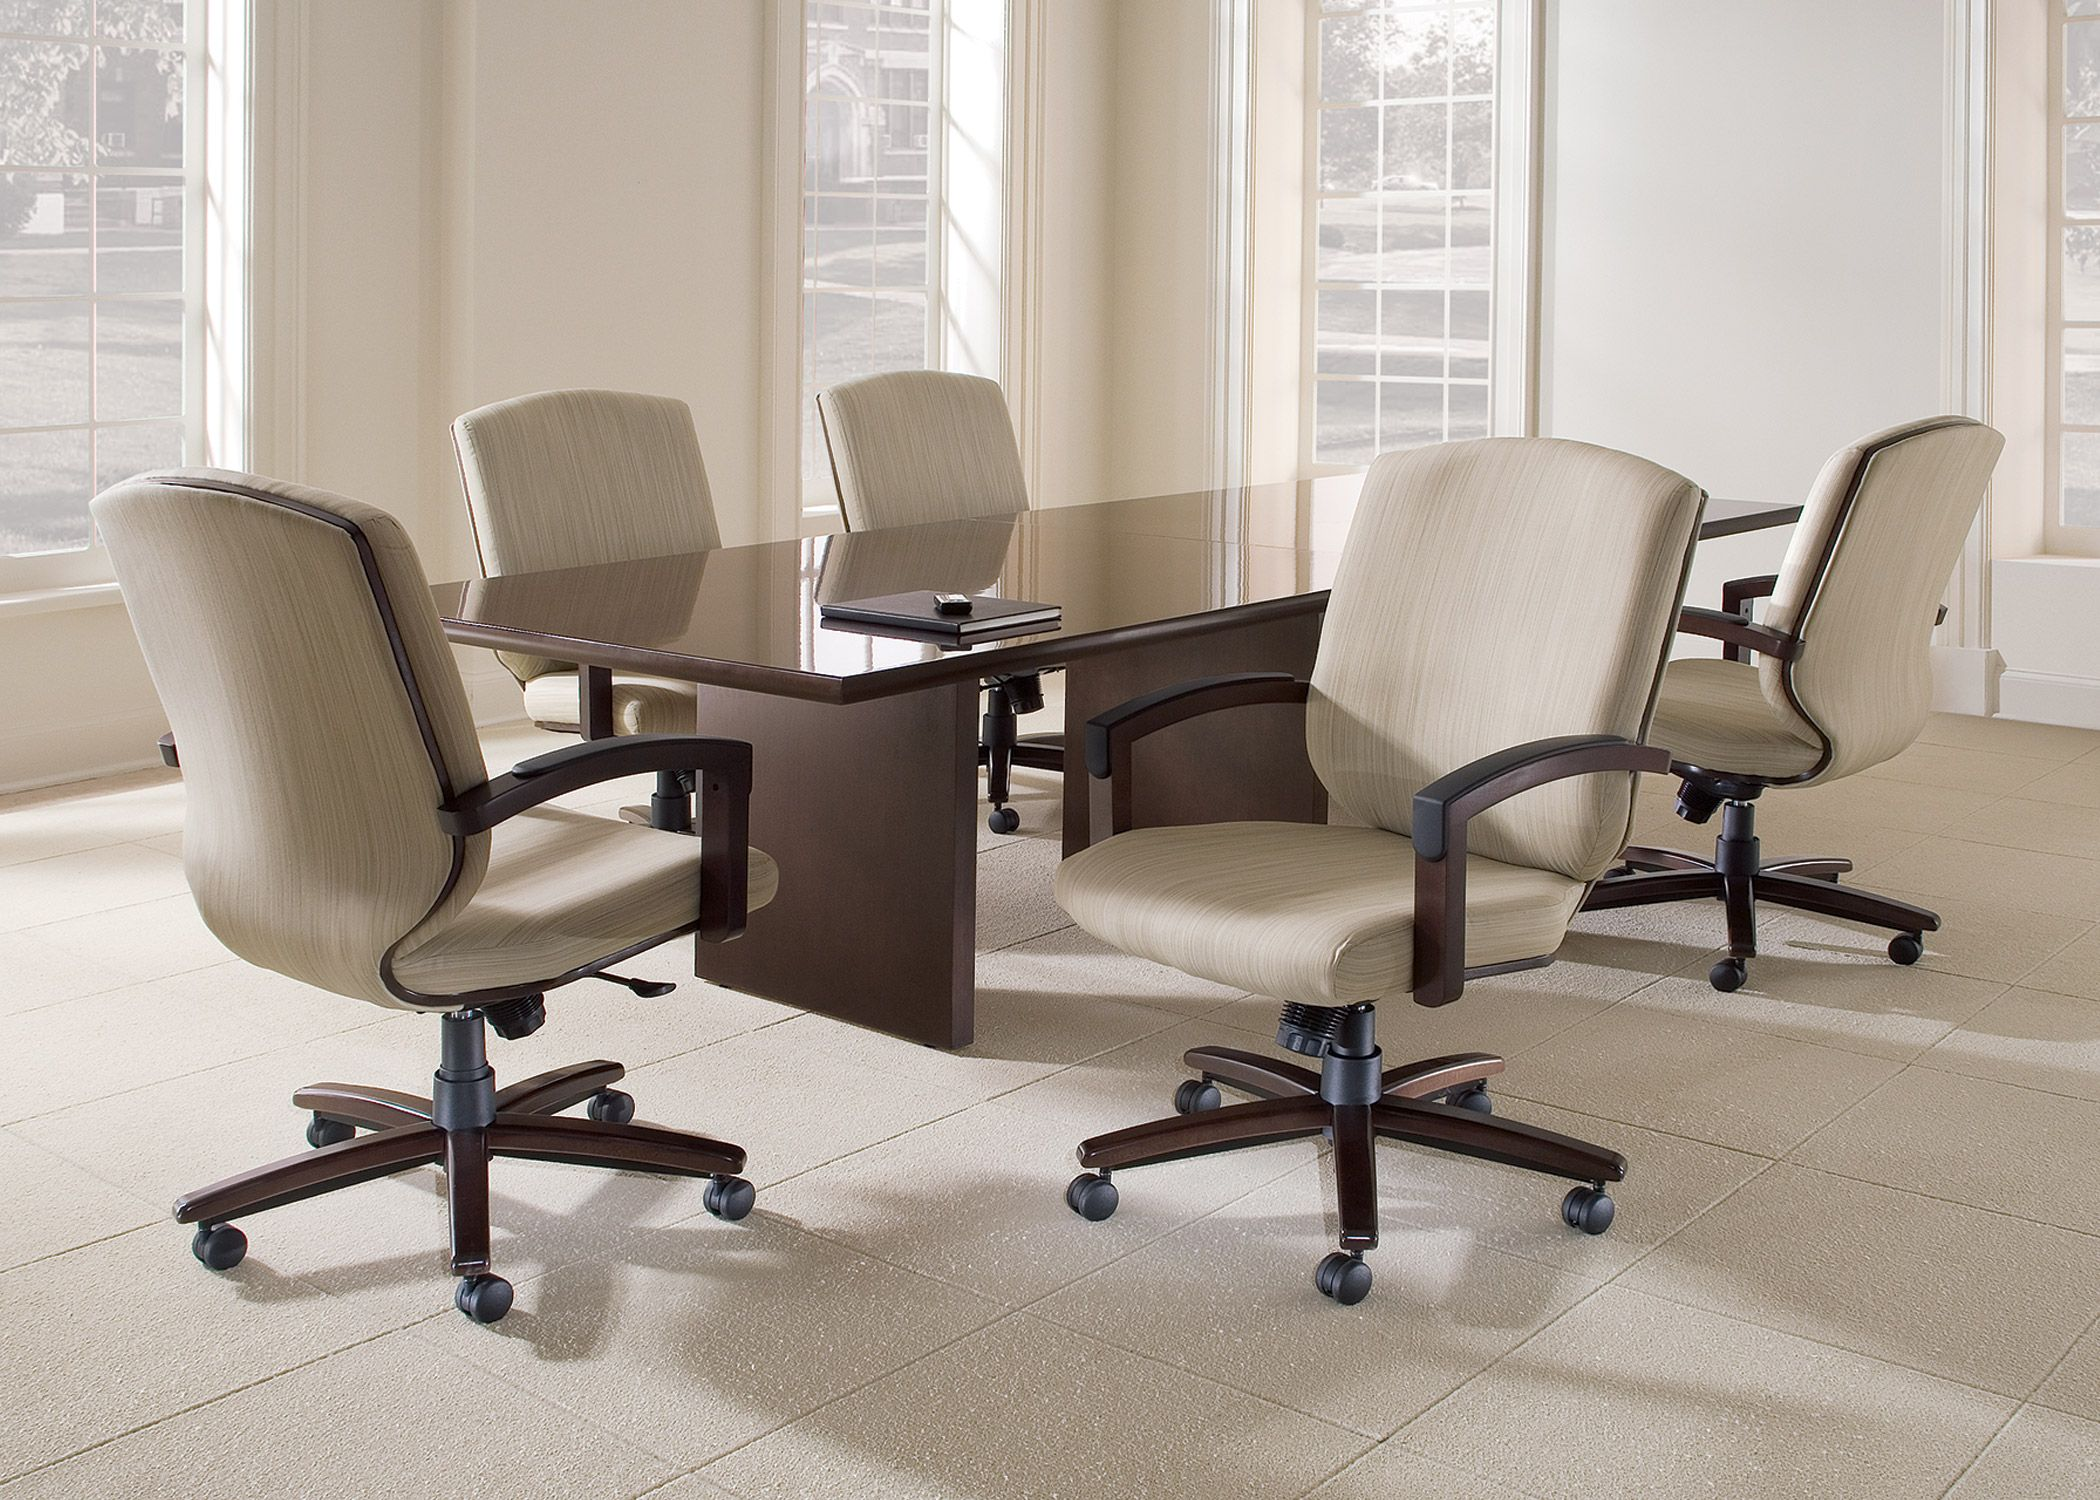 Eloquence National Office Furniture Furniture